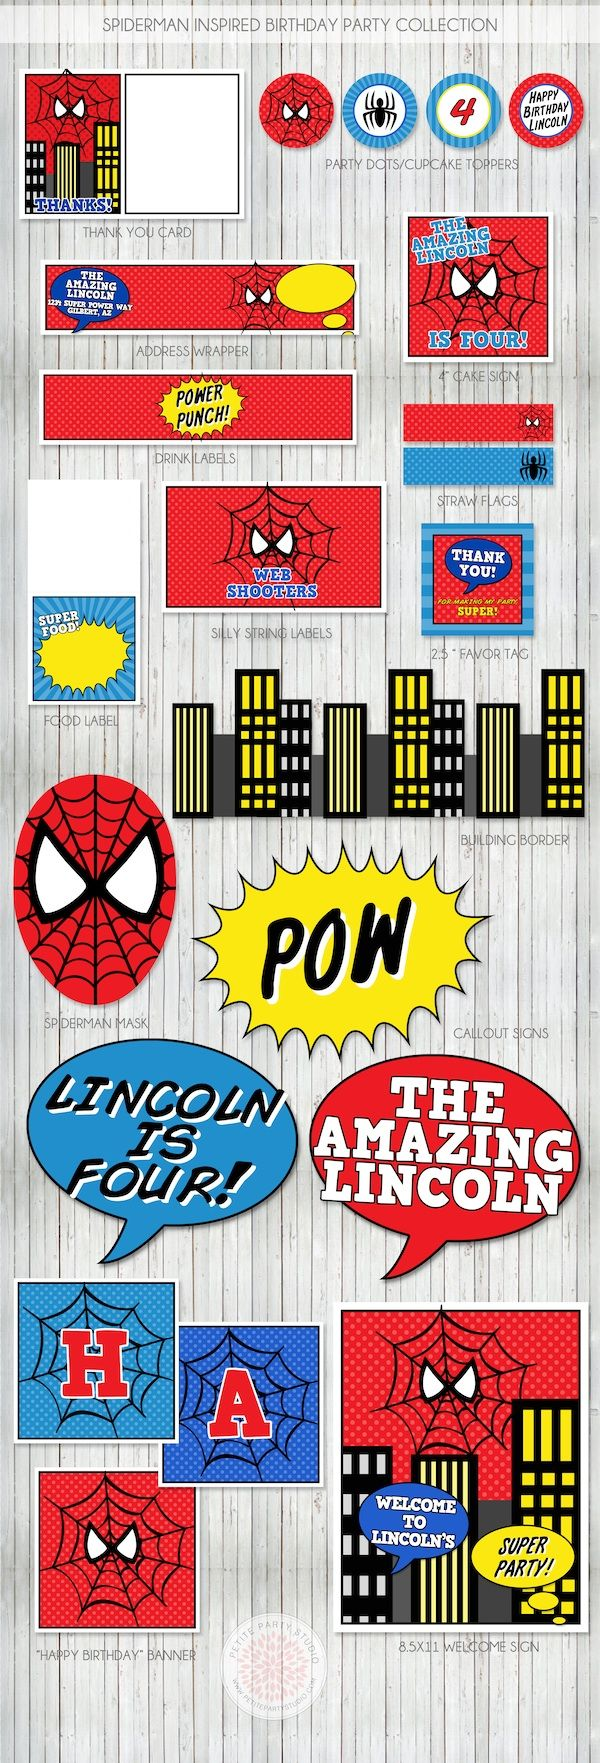 spiderman birthday party party printables spiderman and birthdays